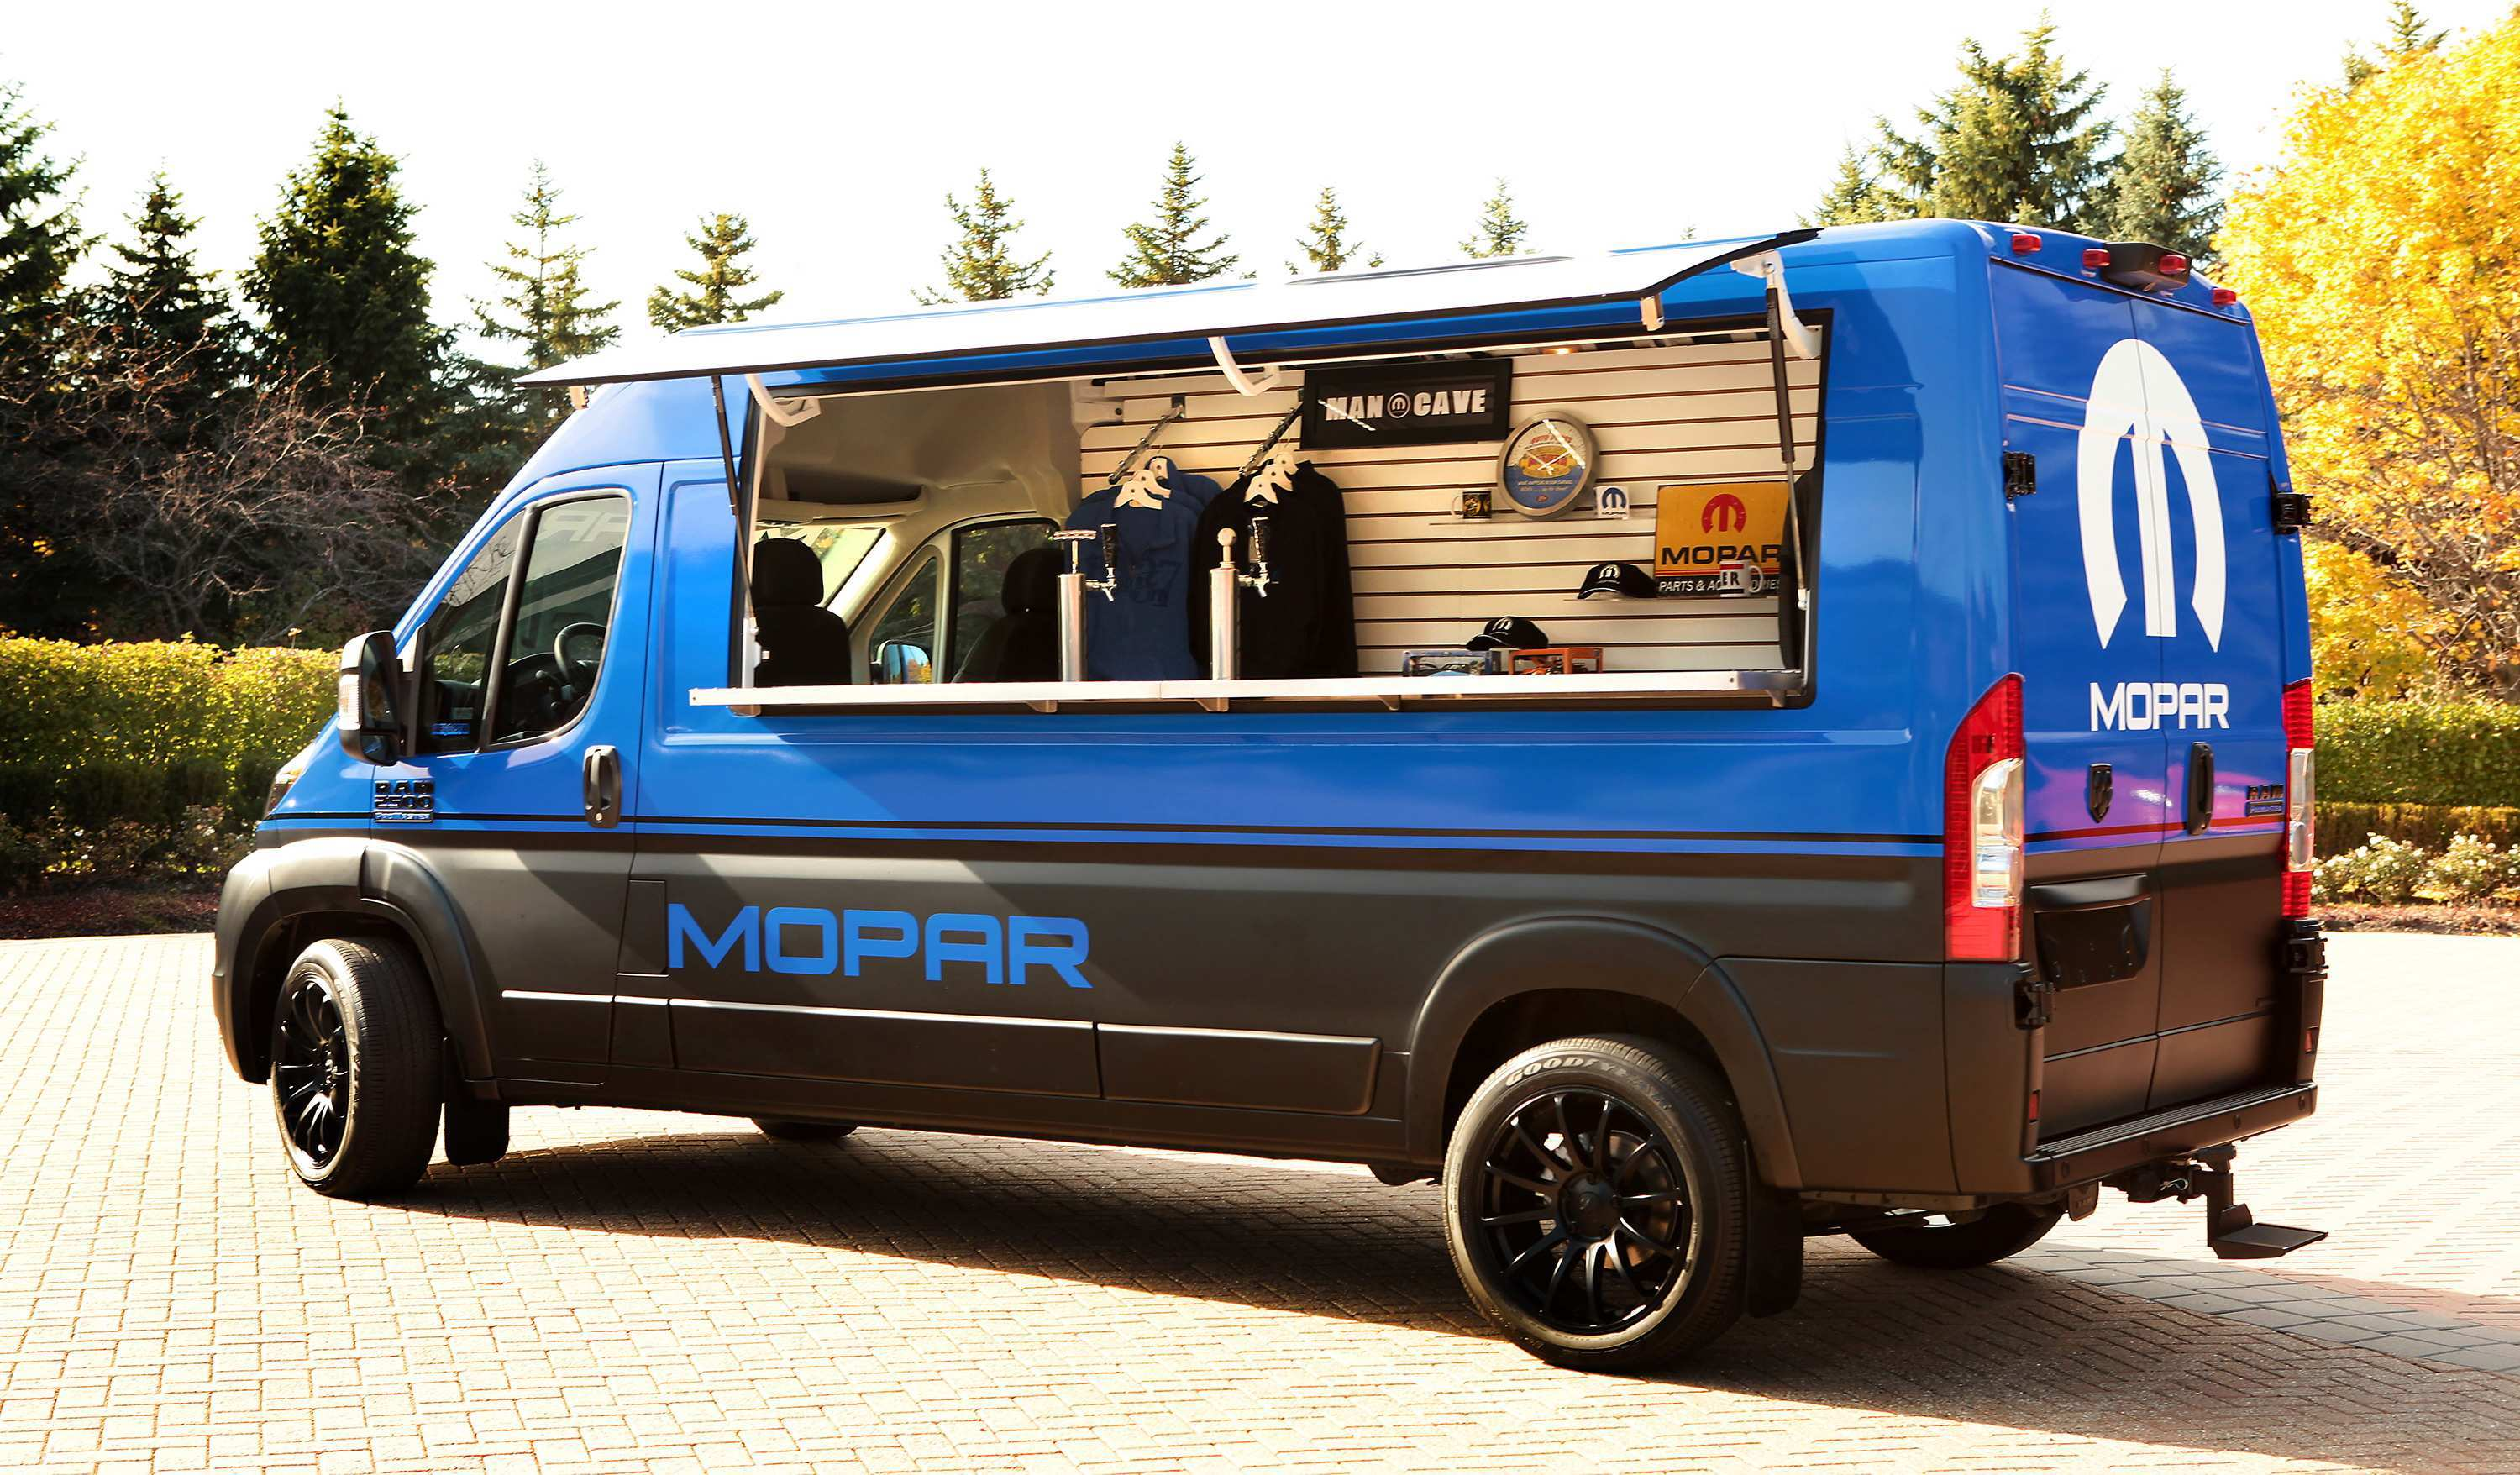 68 Best Review Dodge Promaster 2020 Images by Dodge Promaster 2020